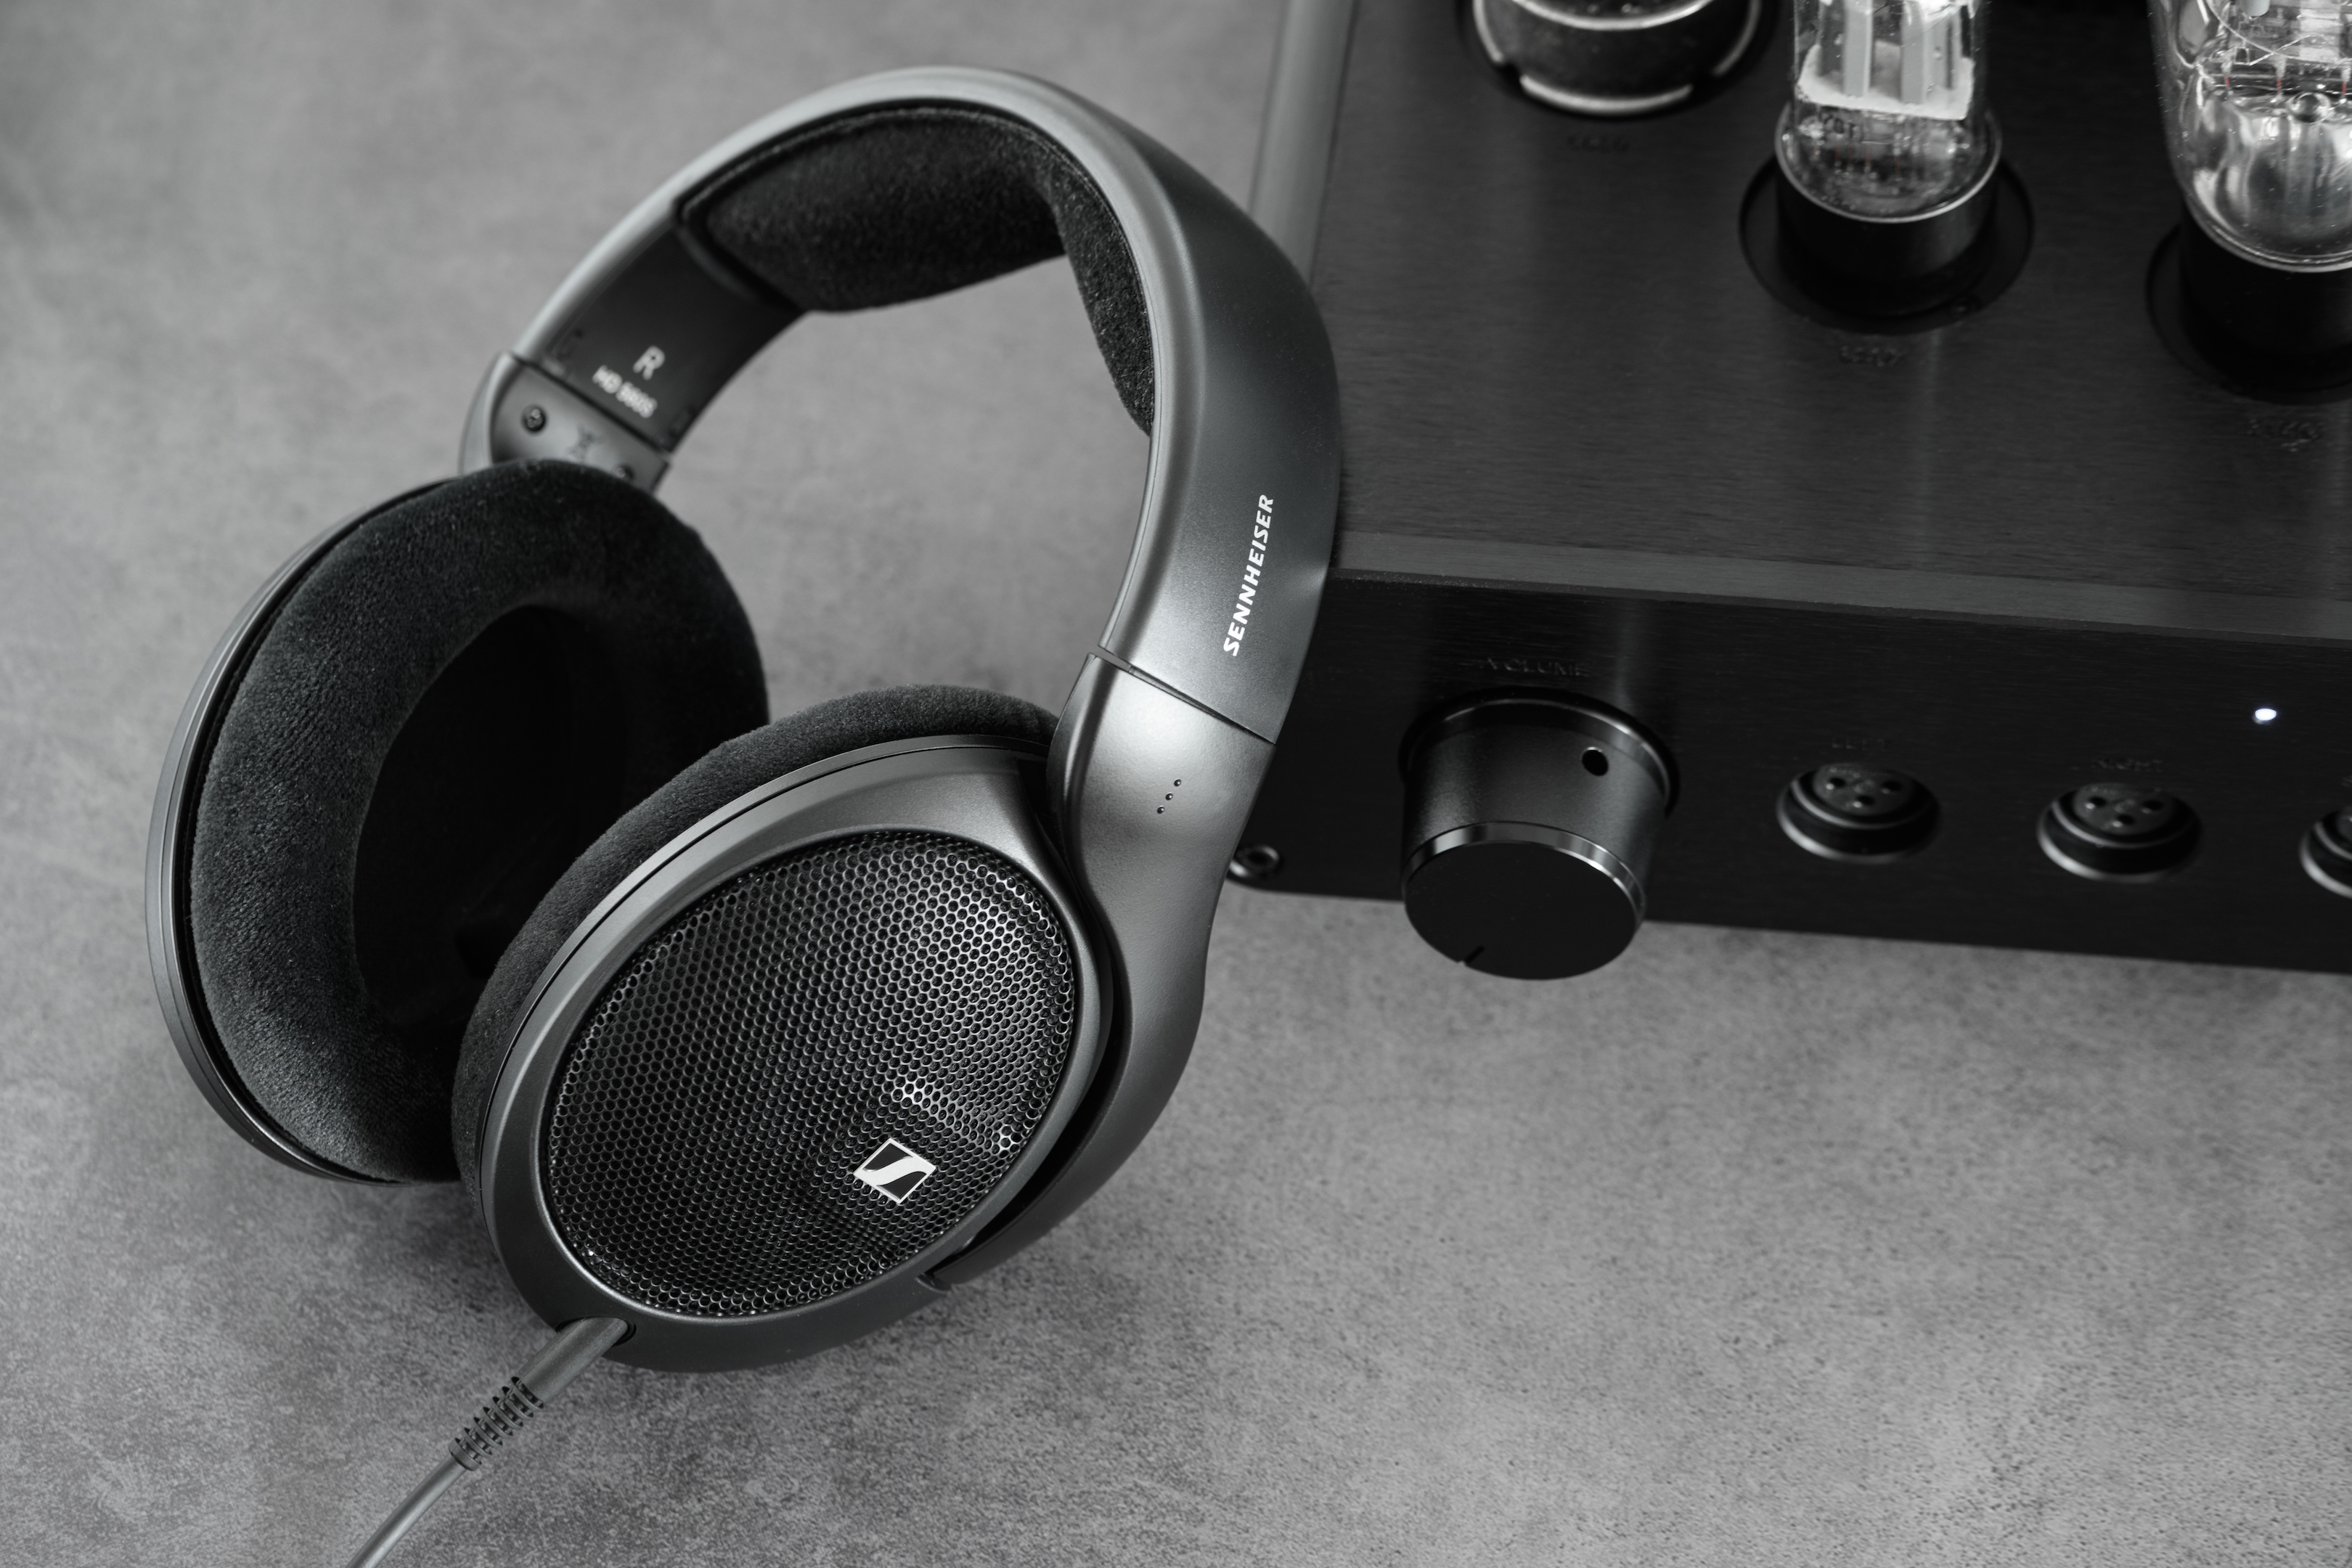 HD 560S Product Mood Shot 3